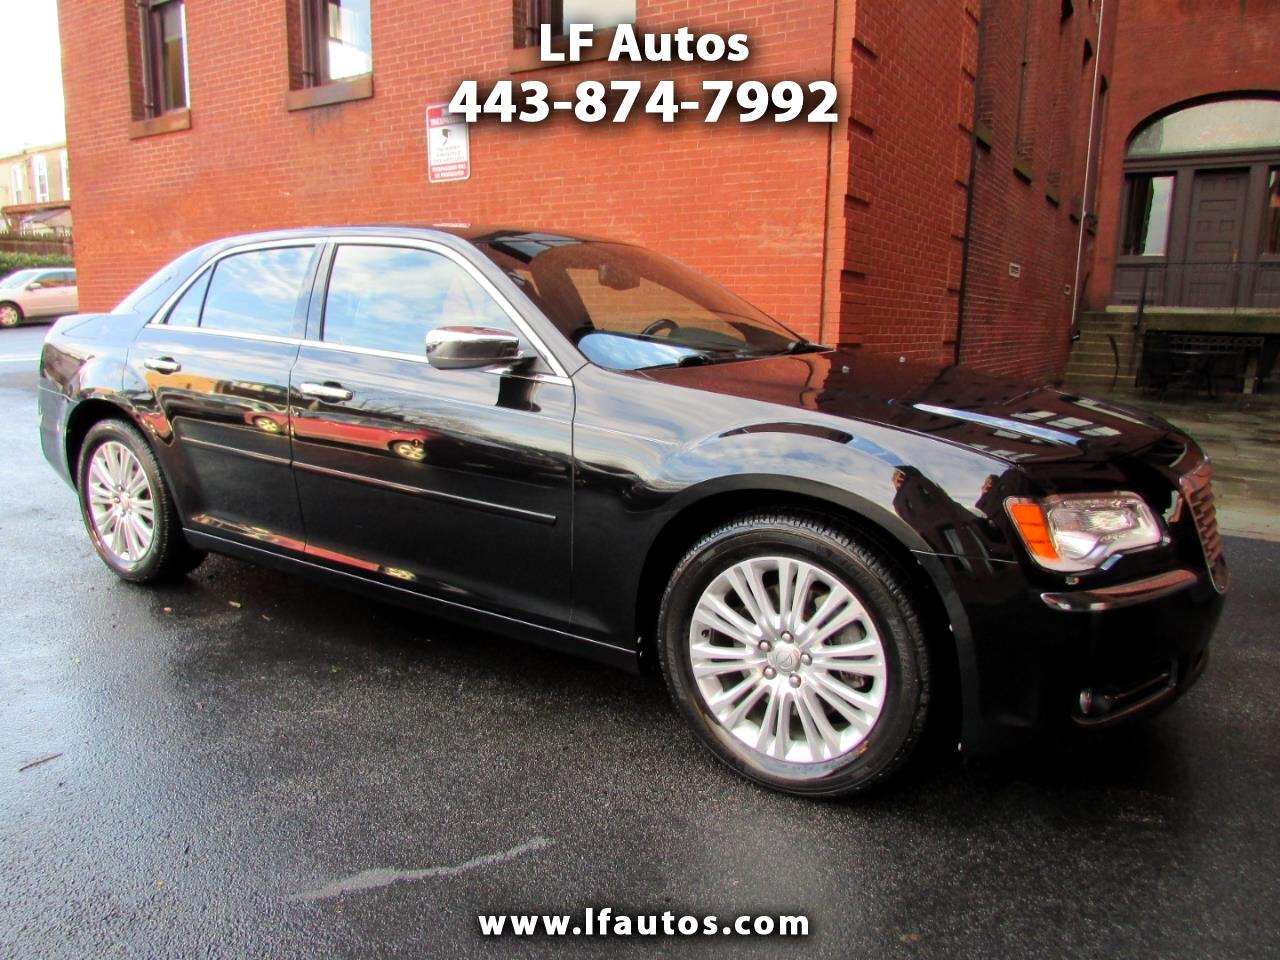 2013 Chrysler 300 4dr Sdn 300C AWD